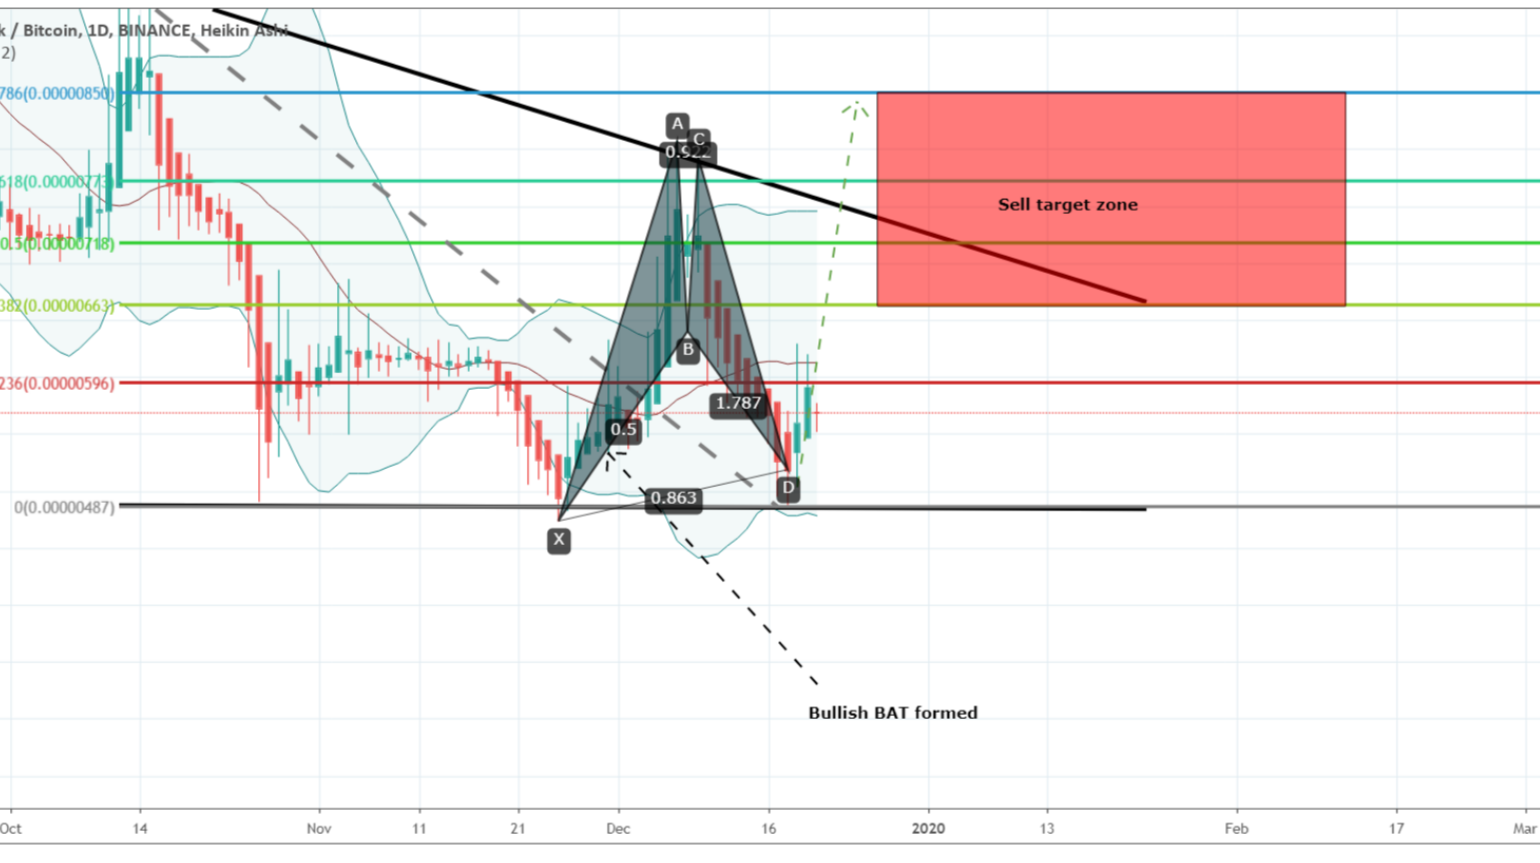 Dusk Network (DUSK) has  hit the support of Wedge and formed bullish harmonic BAT move for breakout